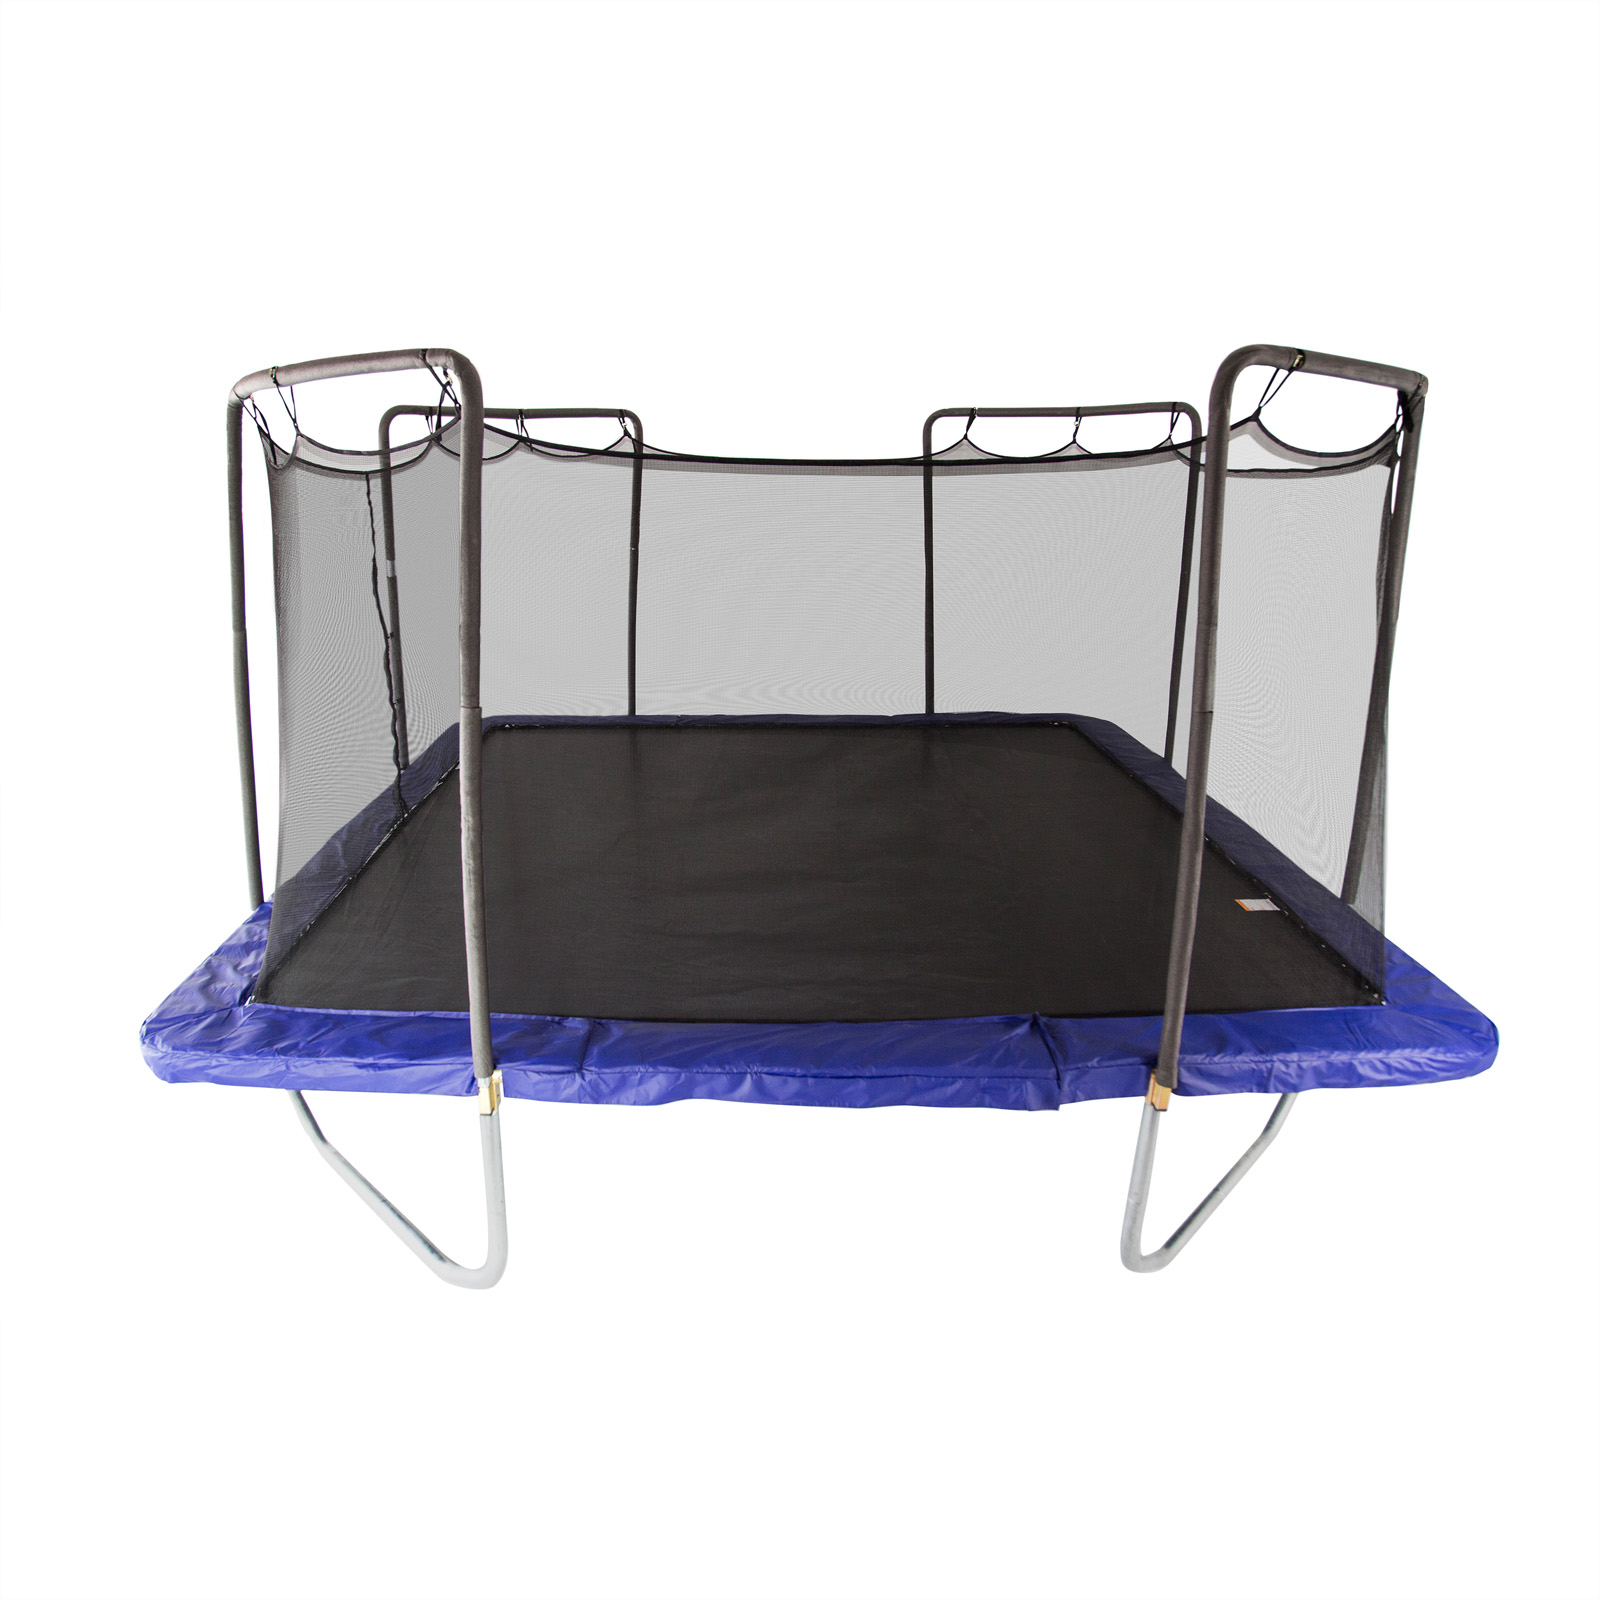 Skywalker 14 Foot Square Trampoline And Enclosure With: Skywalker 15-ft. Square Trampoline And Enclosure Combo